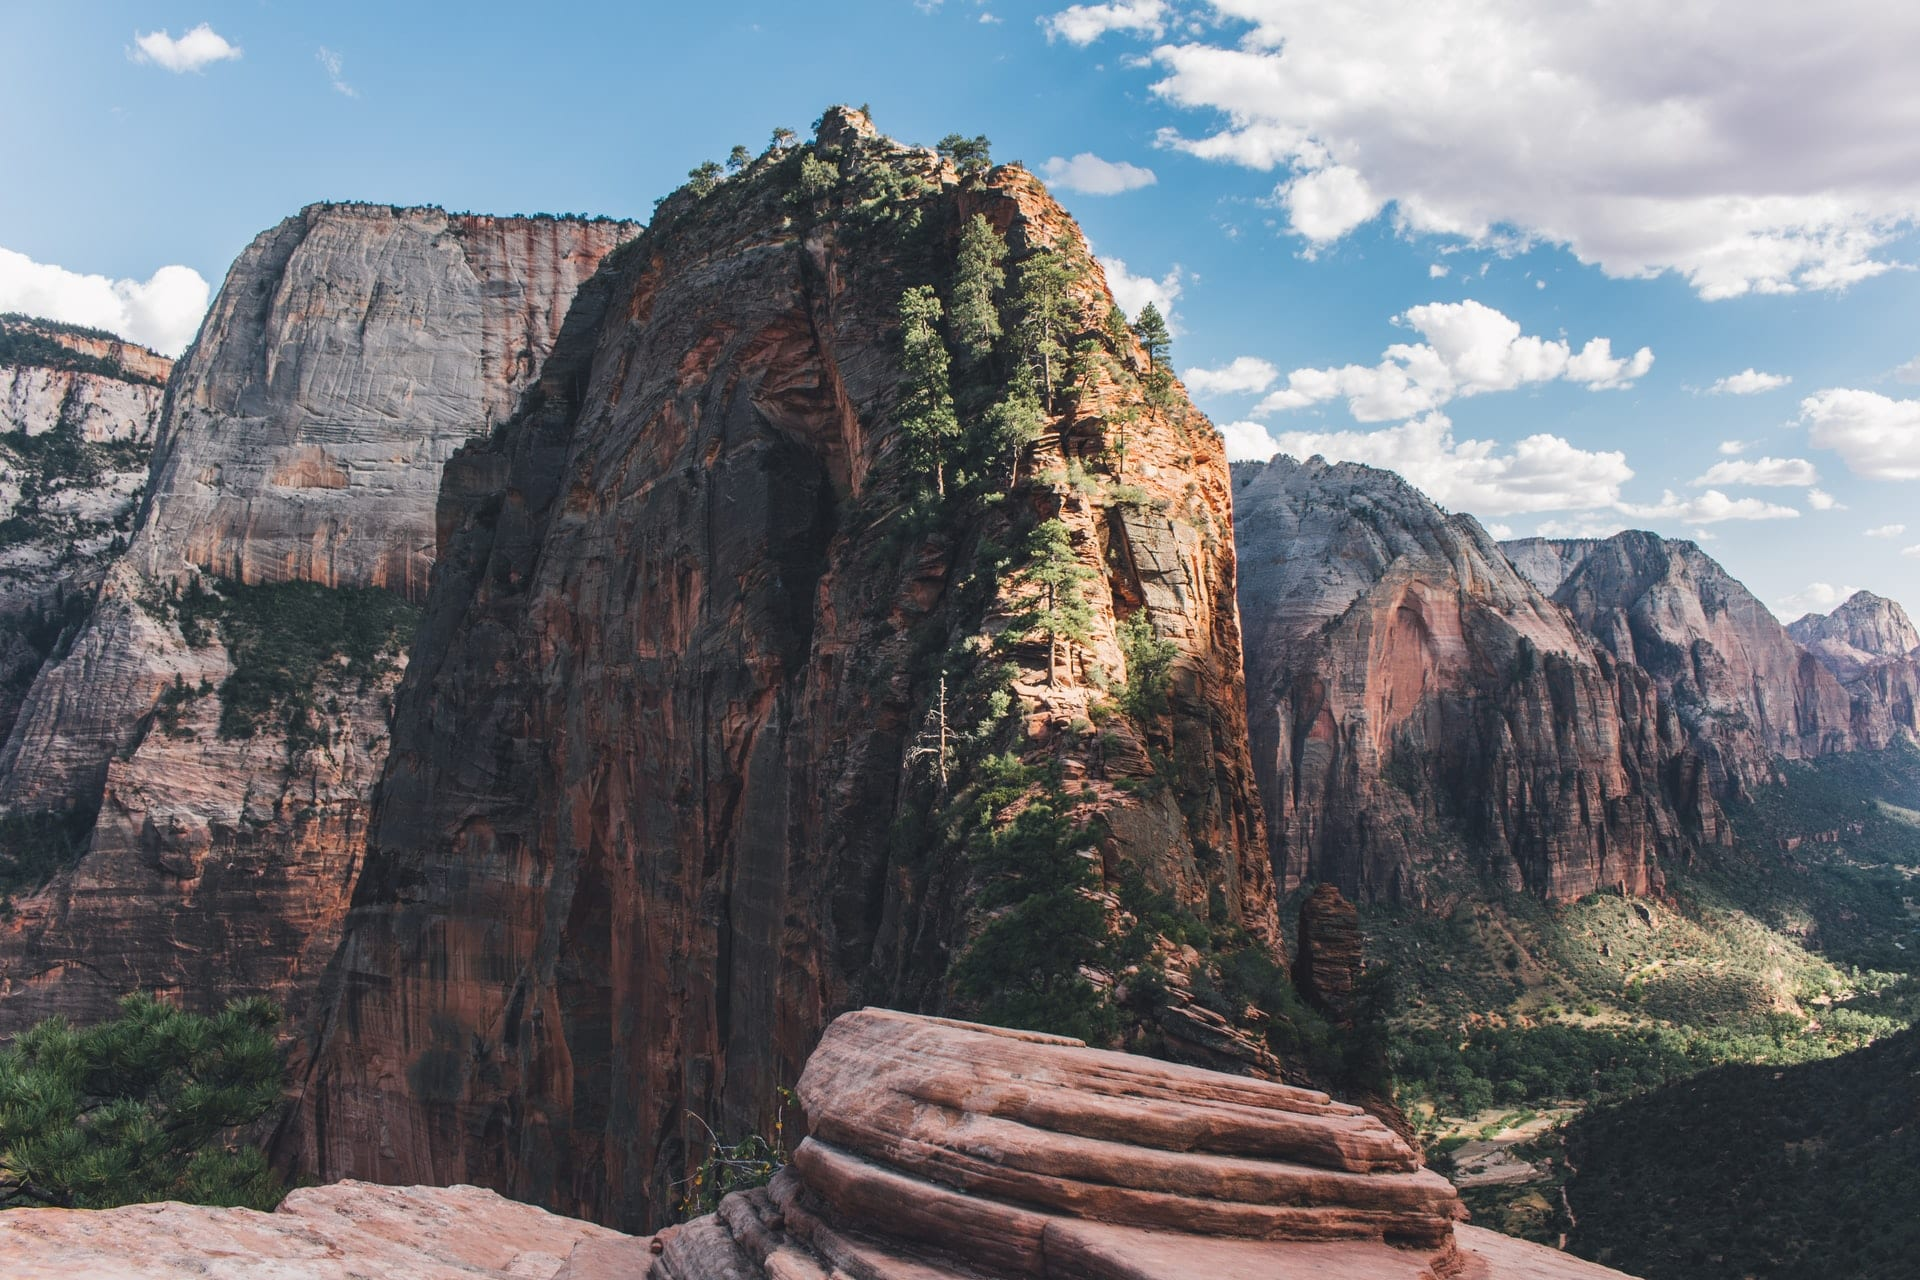 where to stay near Zion national park